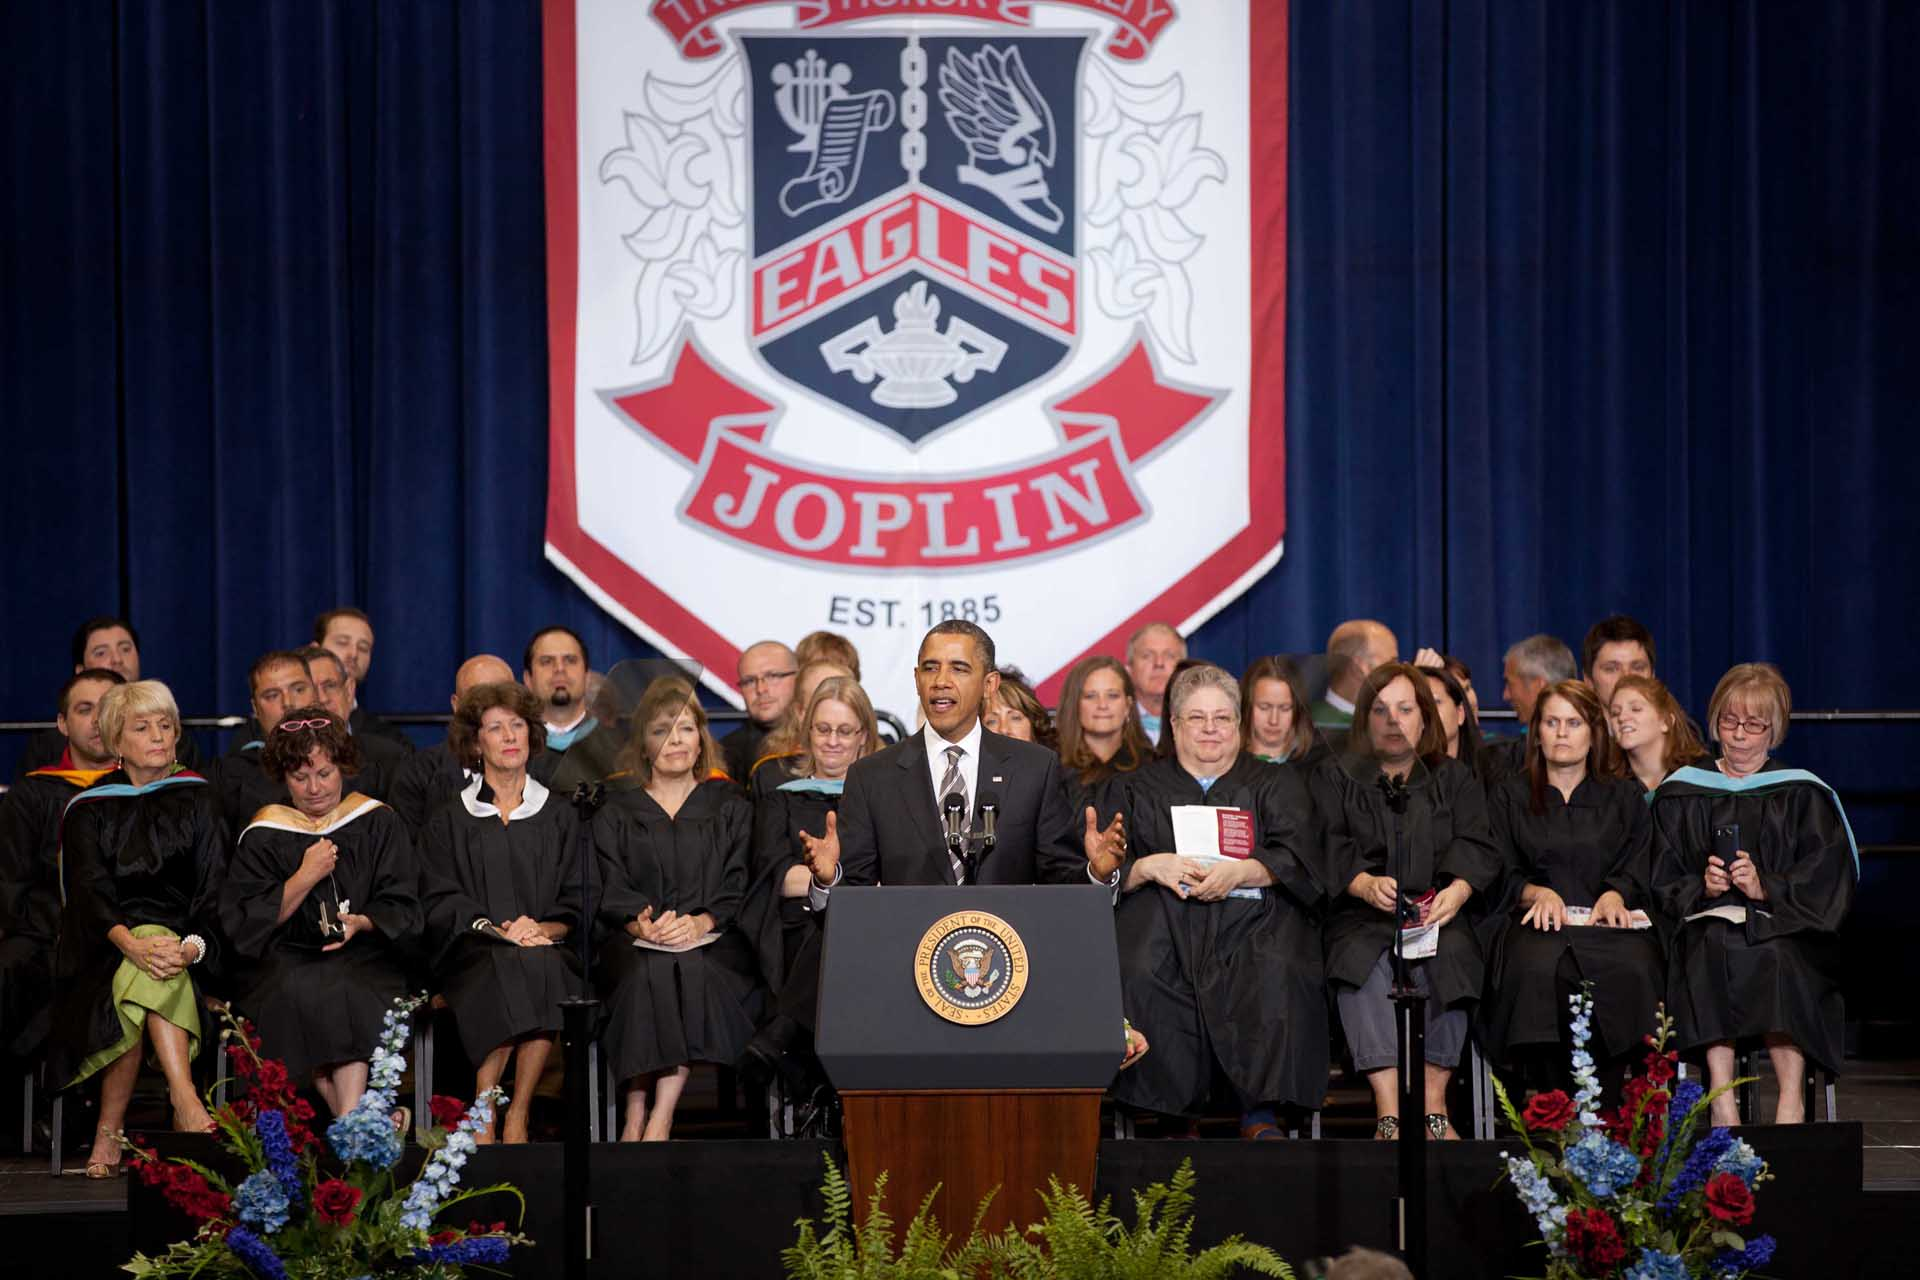 President Barack Obama delivers the commencement address to the graduating seniors of Joplin High School (May 21, 2012)